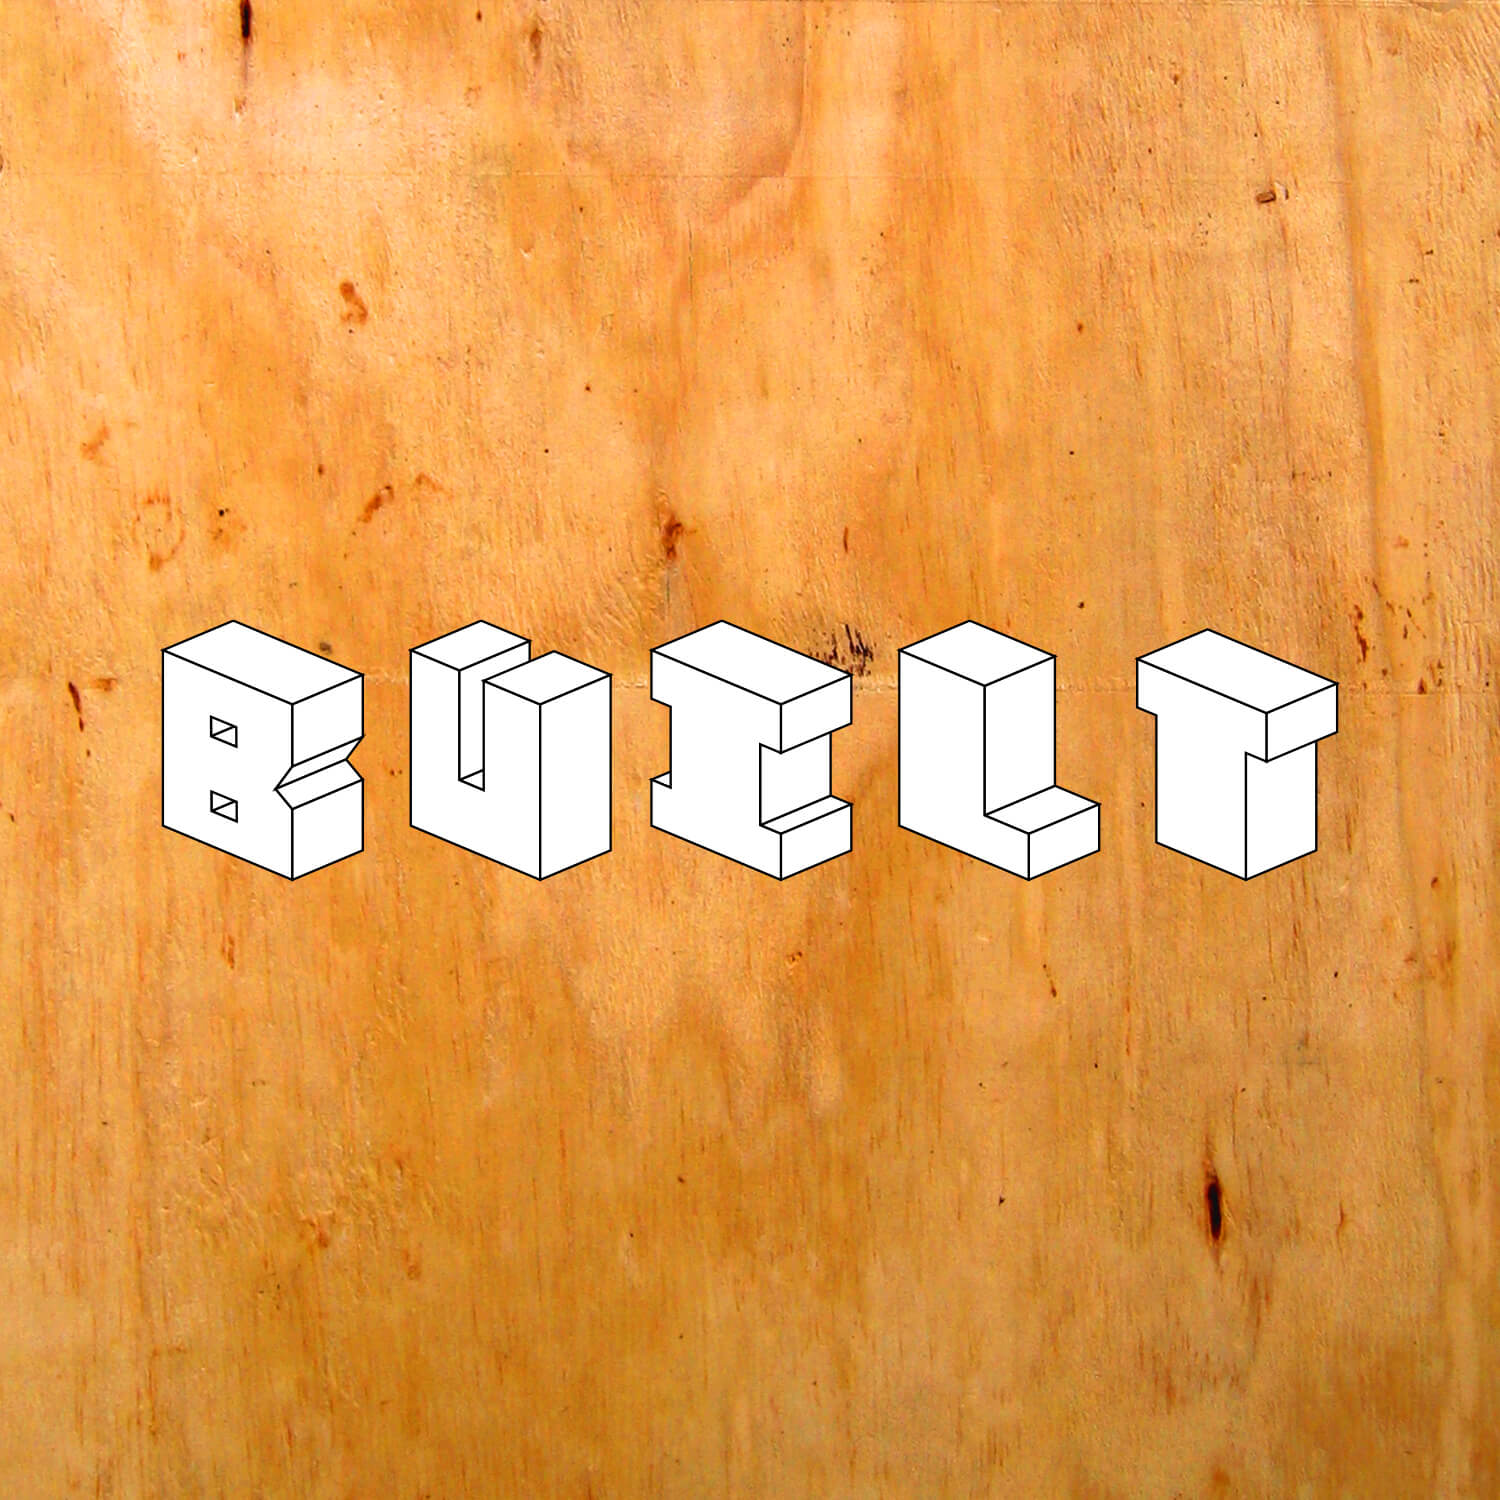 Logo for Built. Built is an exhibition about products designed and manufactured by the designers themselves. No sending off your ideas to factories or fabricators! Those who innovated a way past limitations earned a stage of appreciation during NYCxDesign 2018 at Canal Street Market. Designed under the art direction of Mark McGinnis.